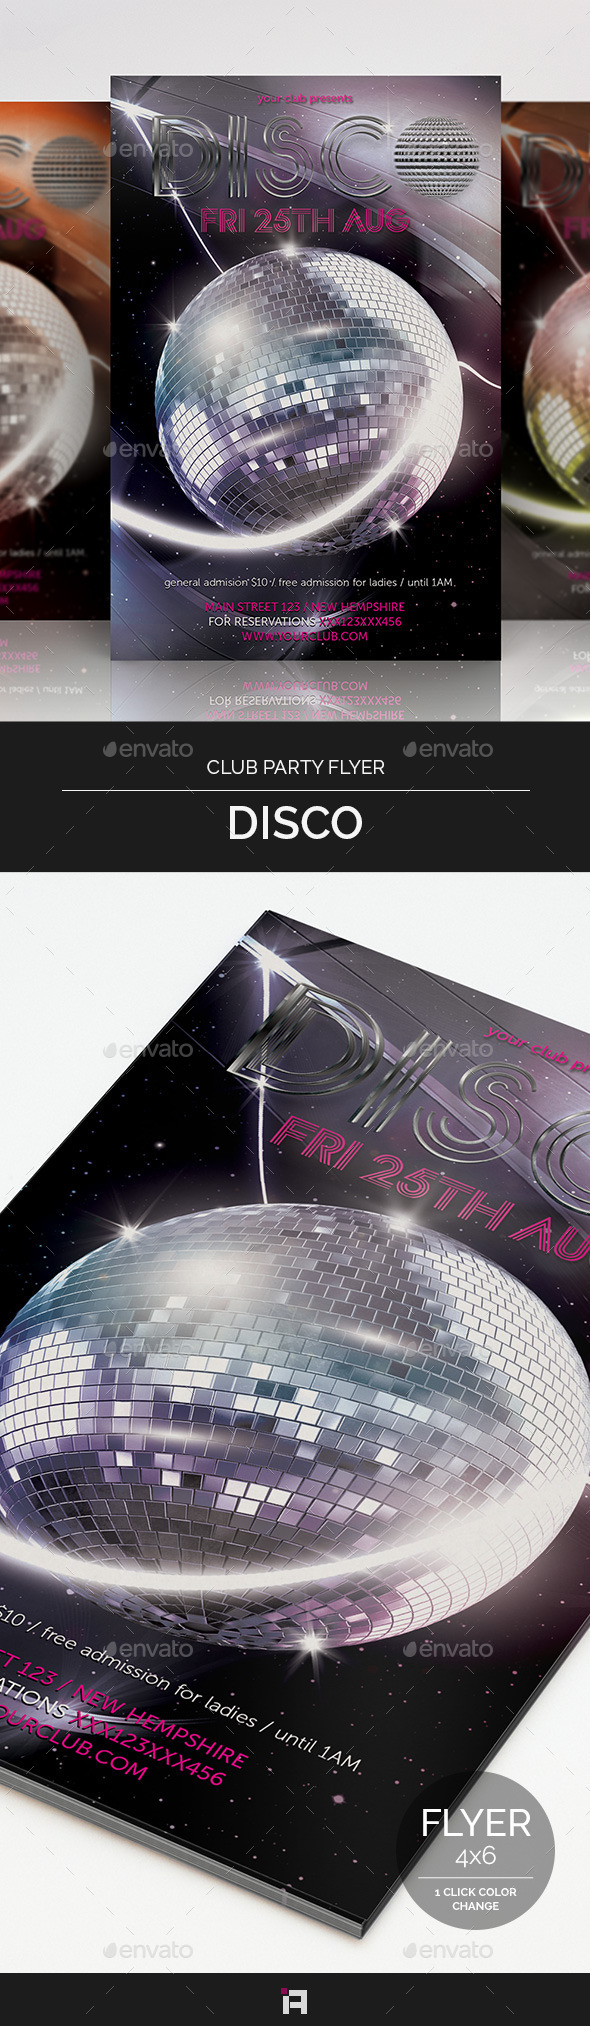 GraphicRiver Disco Club Party Flyer 9242703